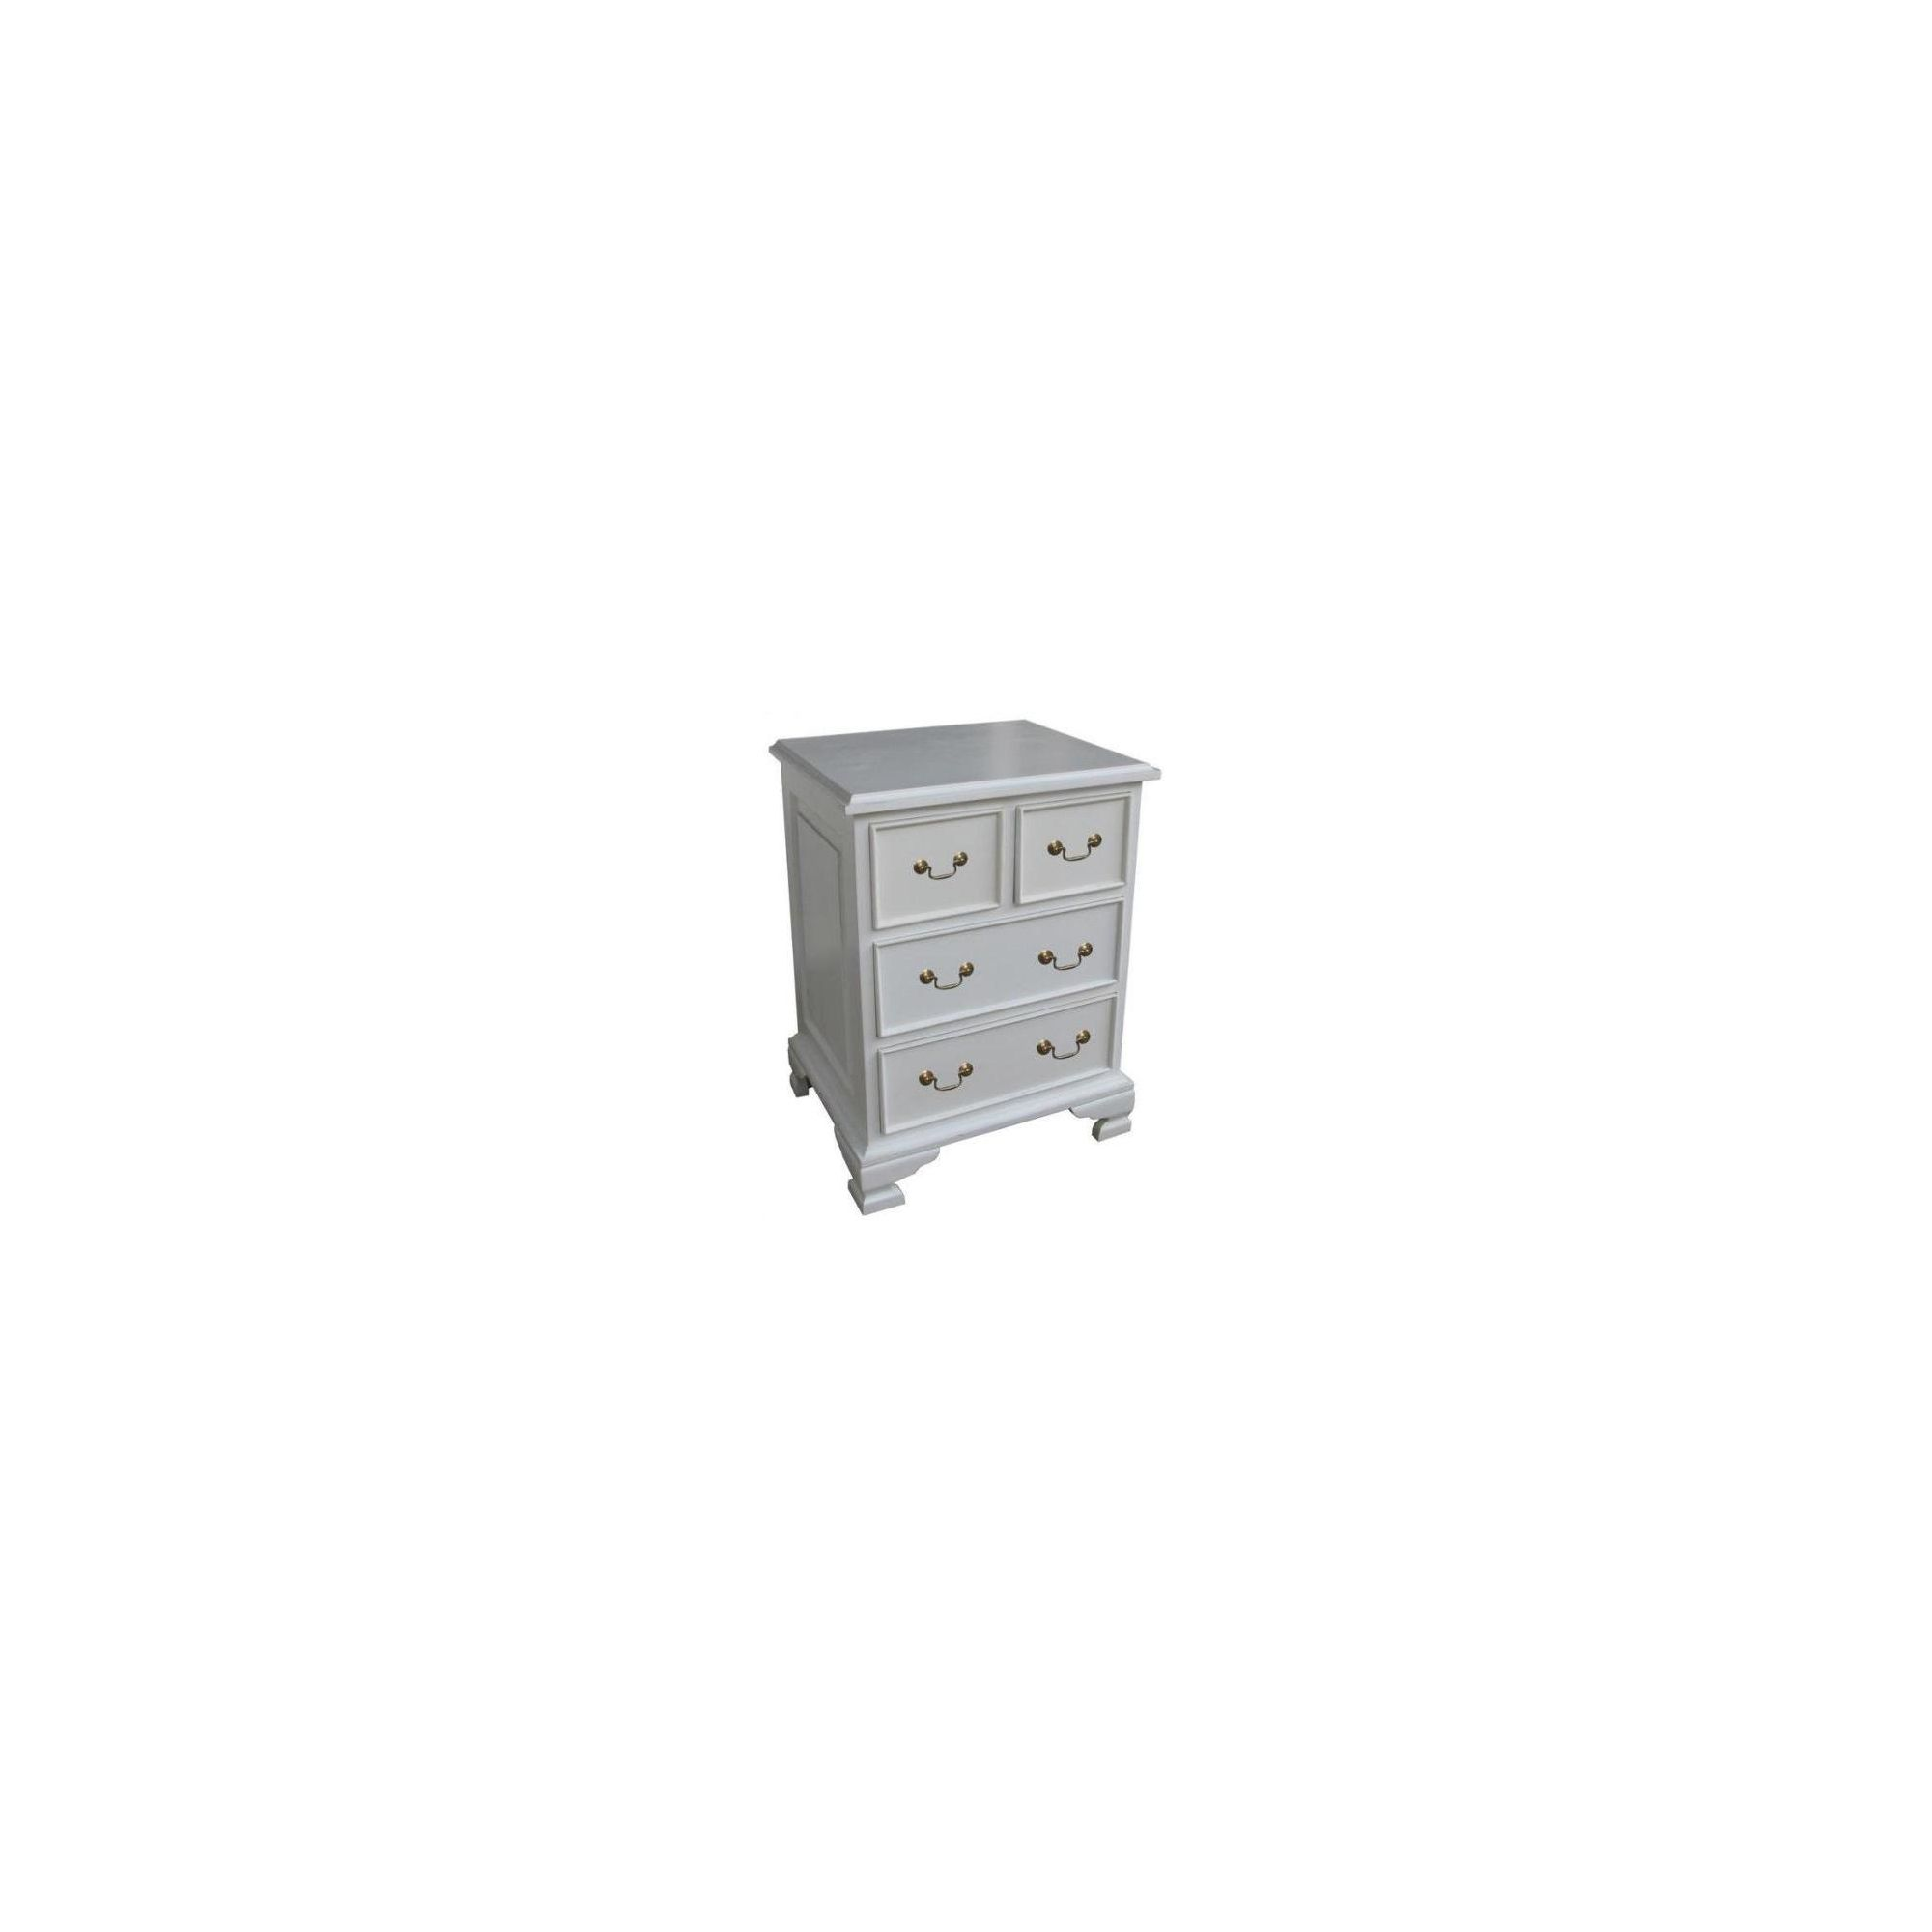 Lock stock and barrel Mahogany 4 Drawer Bedside Table in Mahogany - Antique White at Tesco Direct